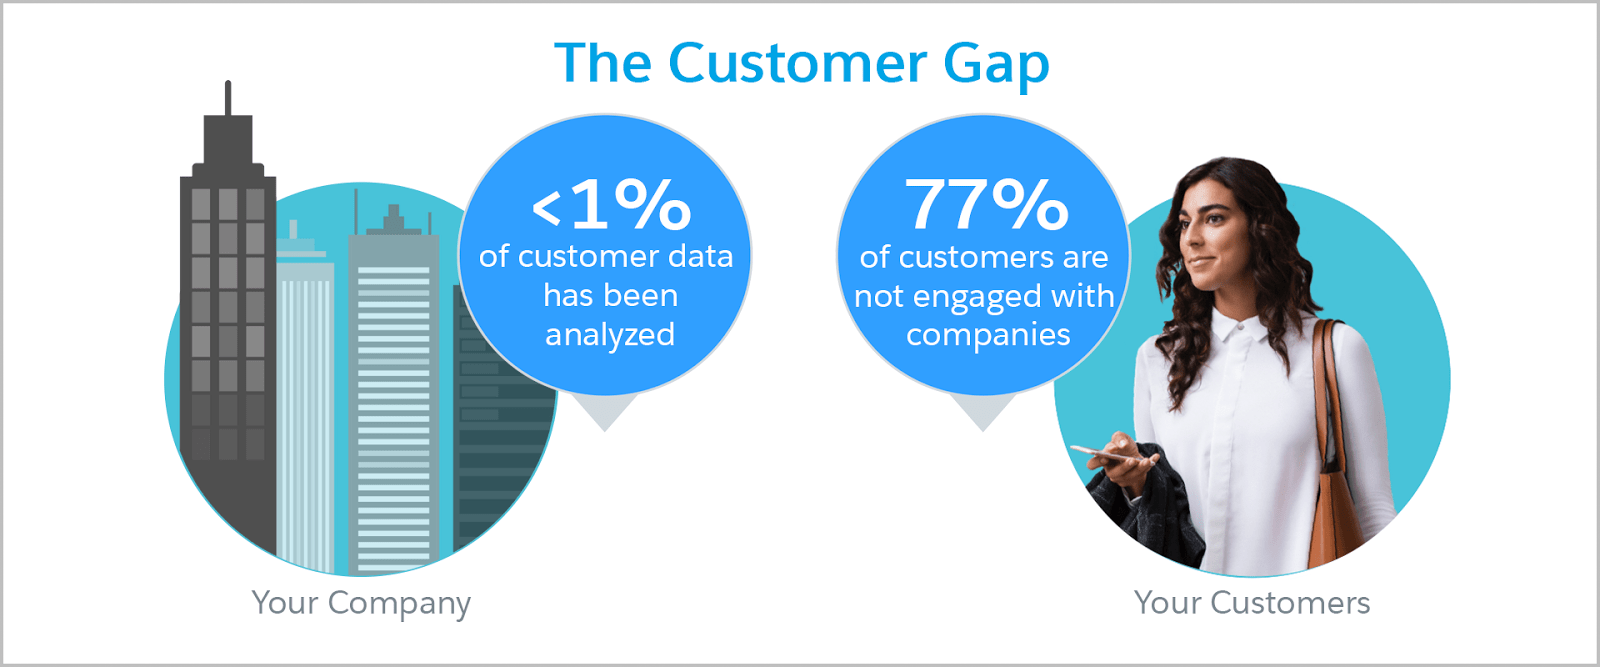 The Customer Gap depicted in two bubbles. On the left is an image of buildings, representing businesses, and the statistic that less than 1% of customer data has been analyzed. On the right is an image of a woman holding a smartphone, and the statistic that 77% of customers are not engaged with companies.